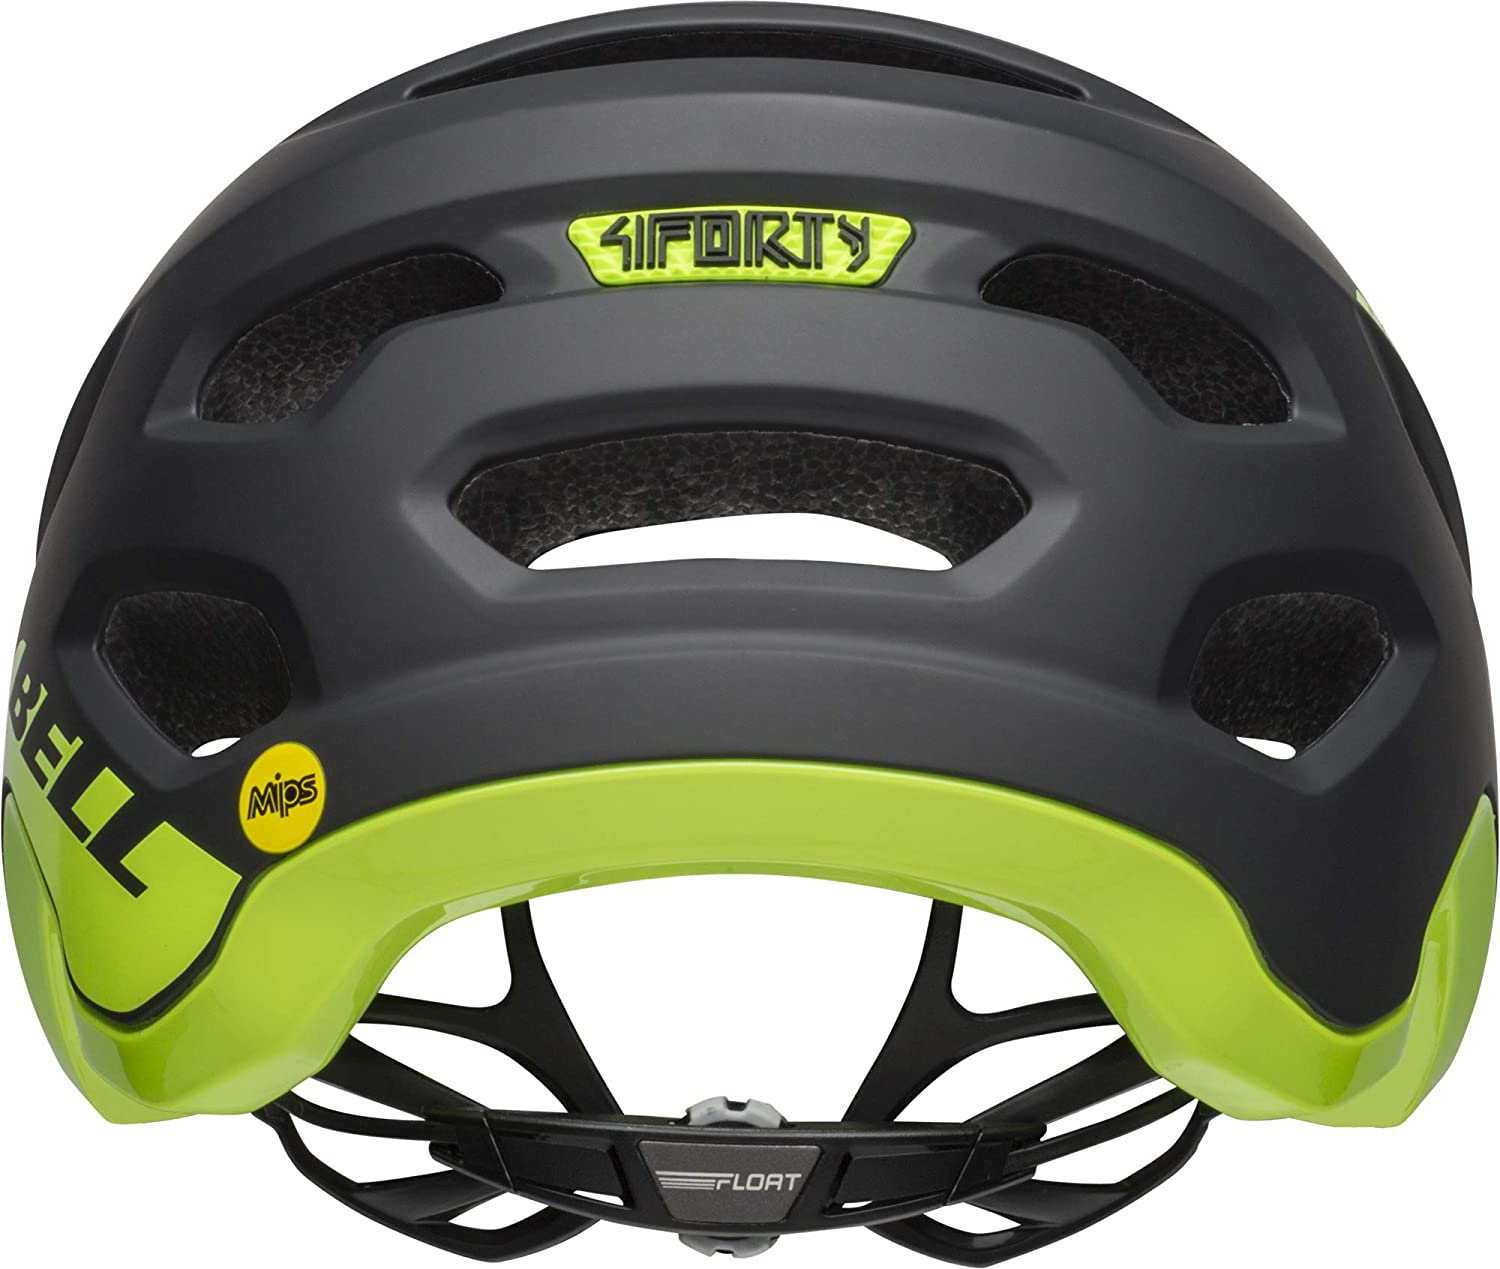 Amazon.com: Bell 4Forty MIPS - Casco de ciclismo para adulto ...